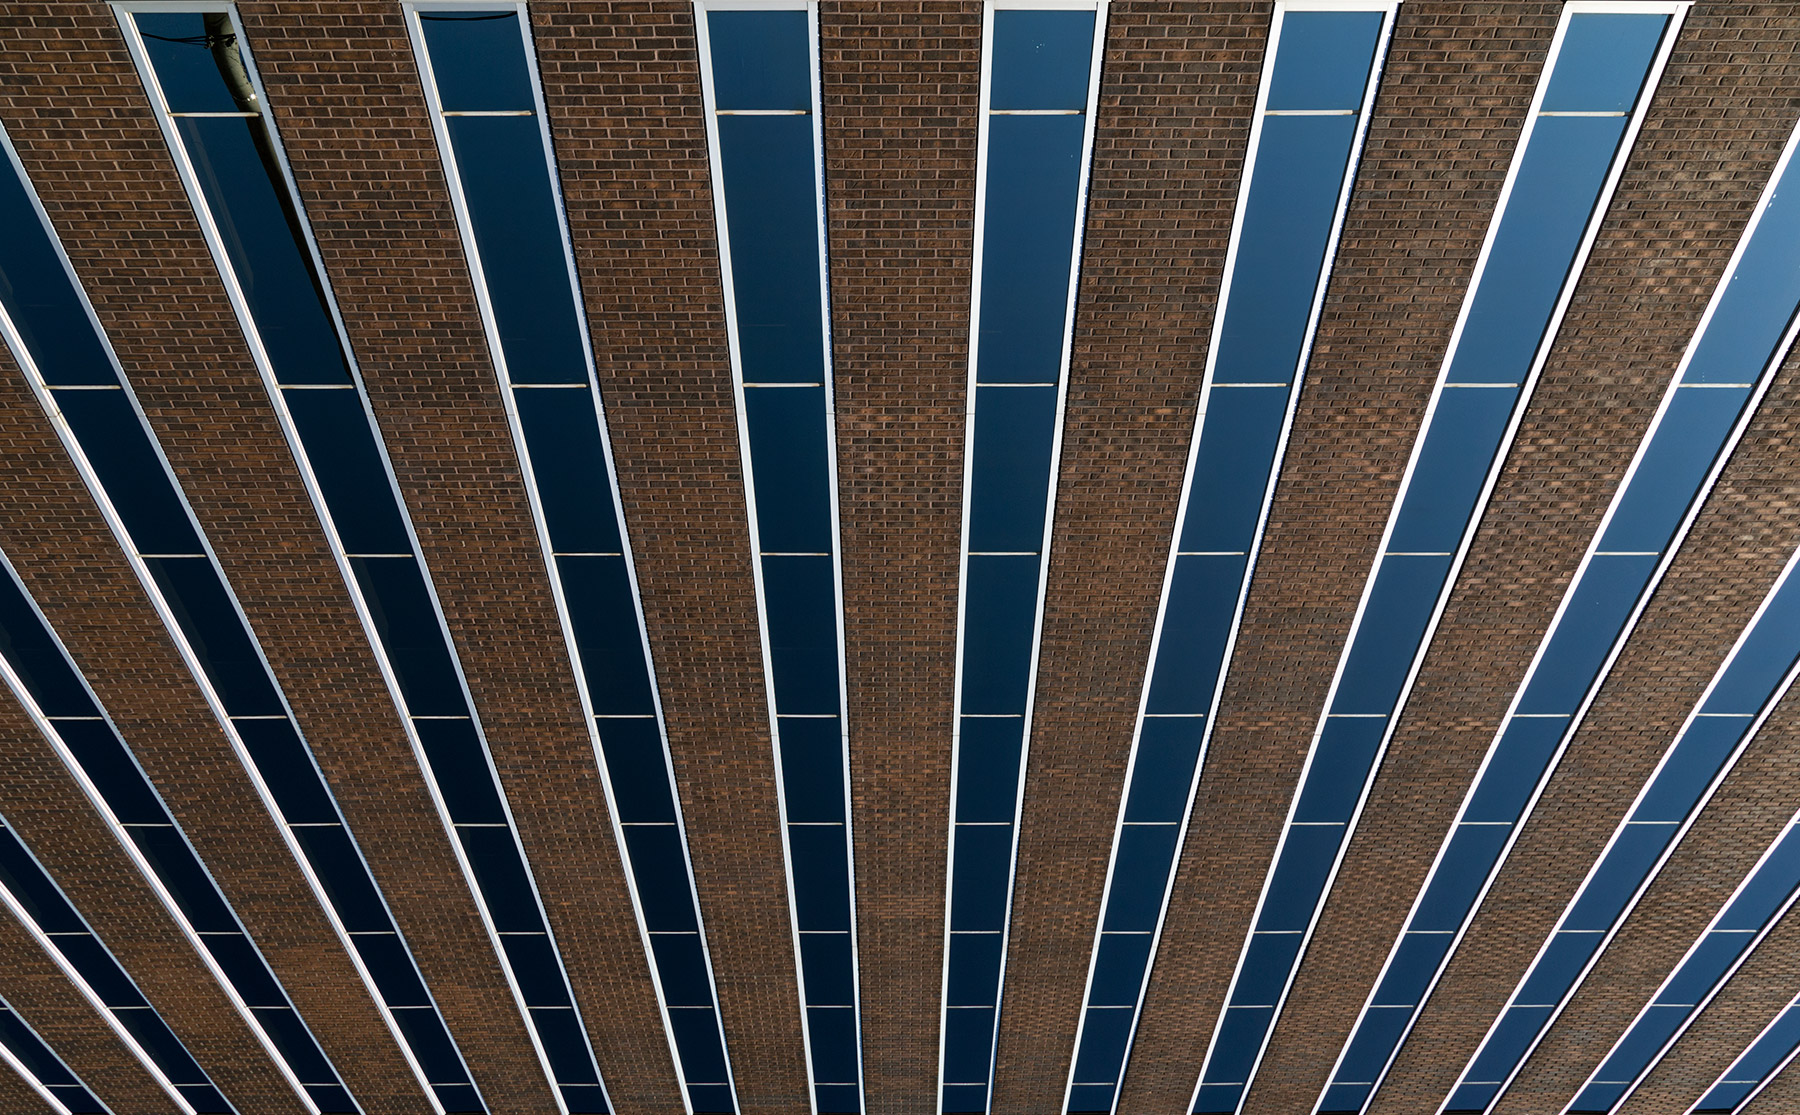 20151011. An uptown post-modern brick and glass abstraction. Min